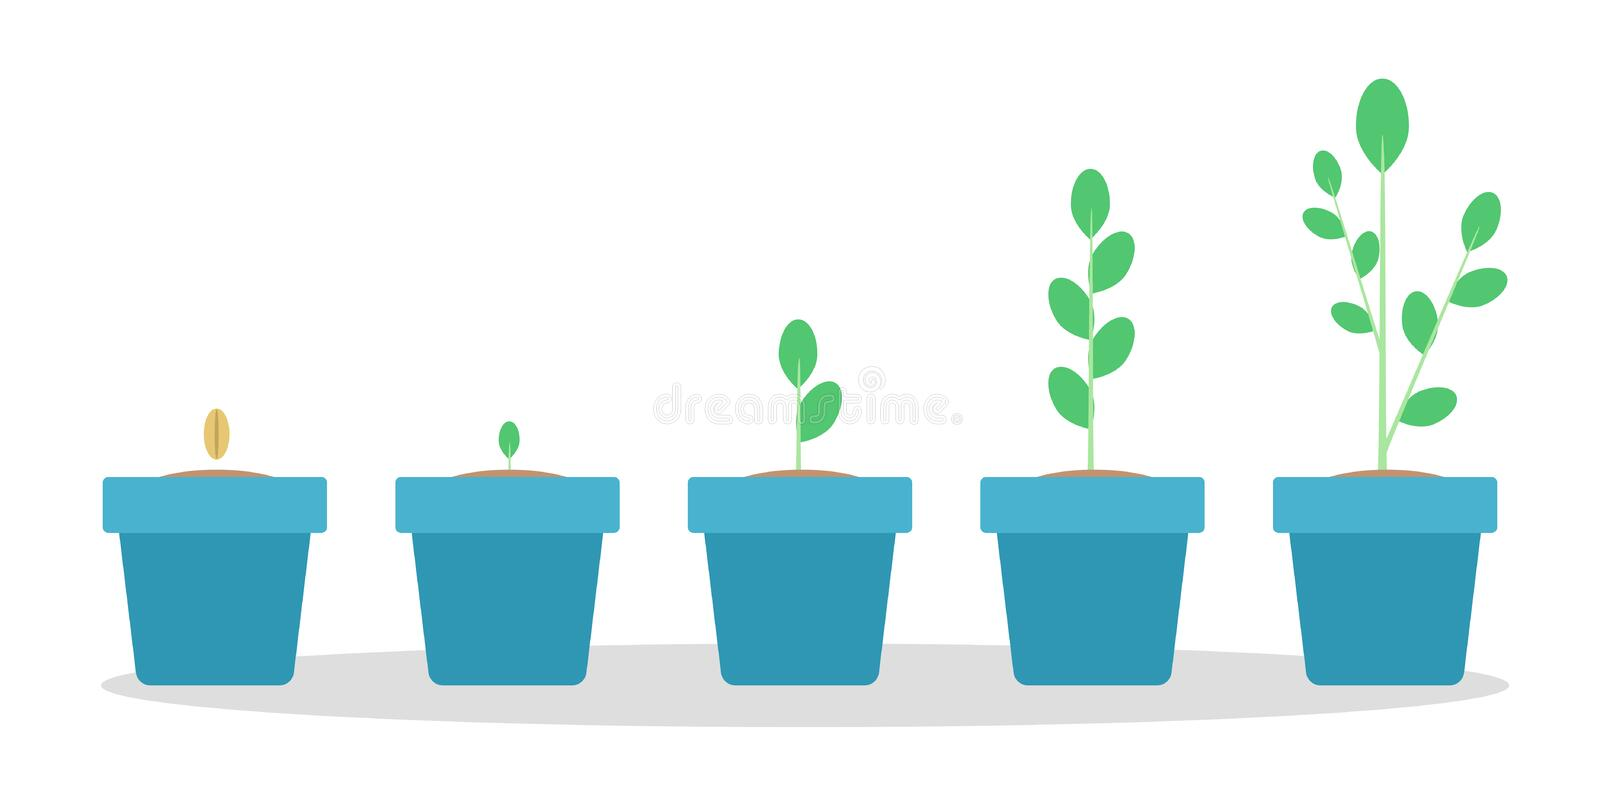 Stages of green plant growth in the blue pot. From seed to sprout. Isolated flat vector illustration vector illustration